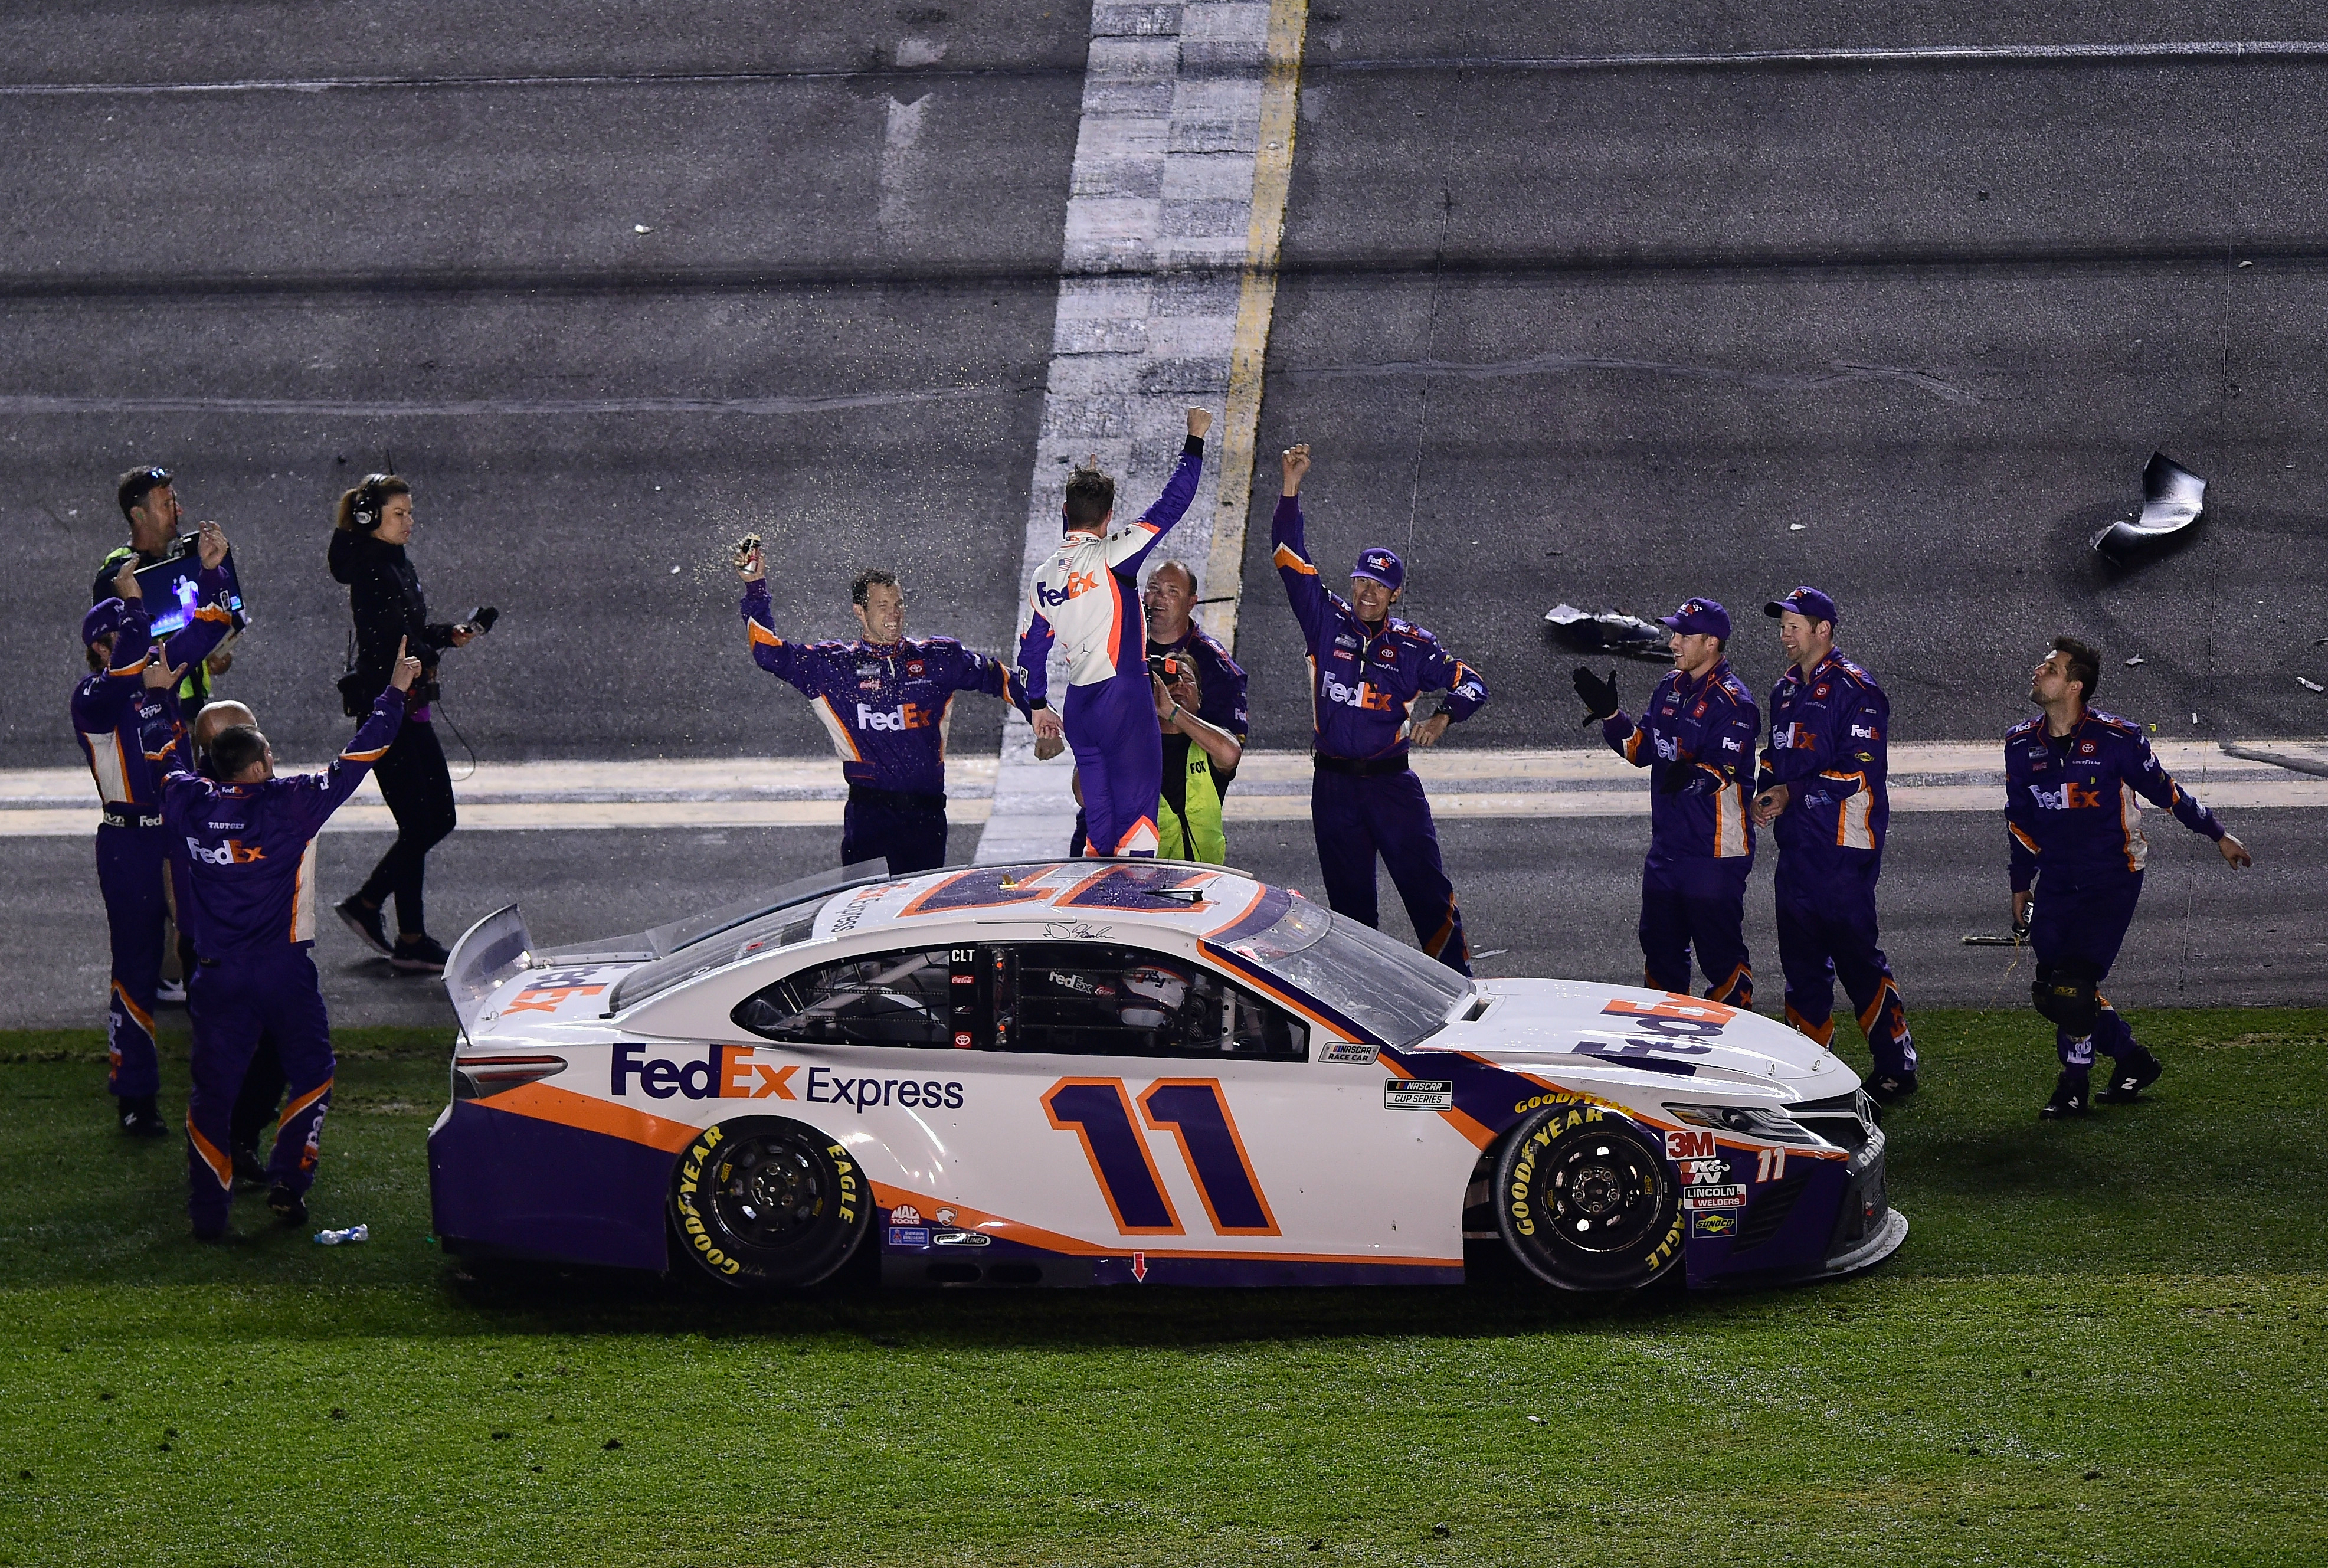 Daytona 500 results: Denny Hamlin wins for second-straight year after scary Ryan Newman crash on final lap